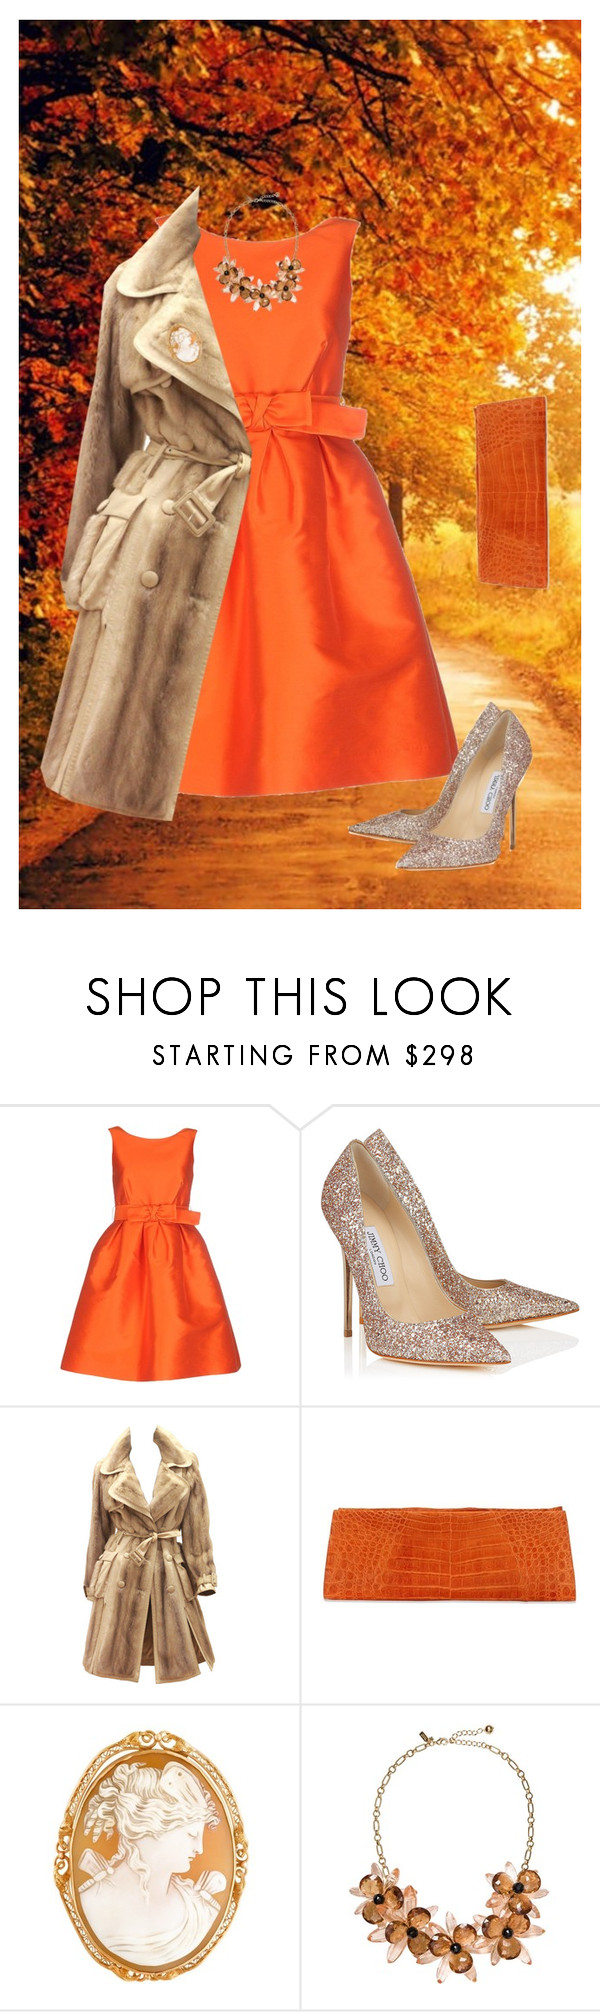 """Untitled #624"" by amchavesj-1 ❤ liked on Polyvore featuring P.A.R.O.S.H., Jimmy Choo, John Galliano, Anne Sisteron, Kate Spade and camelcoat"